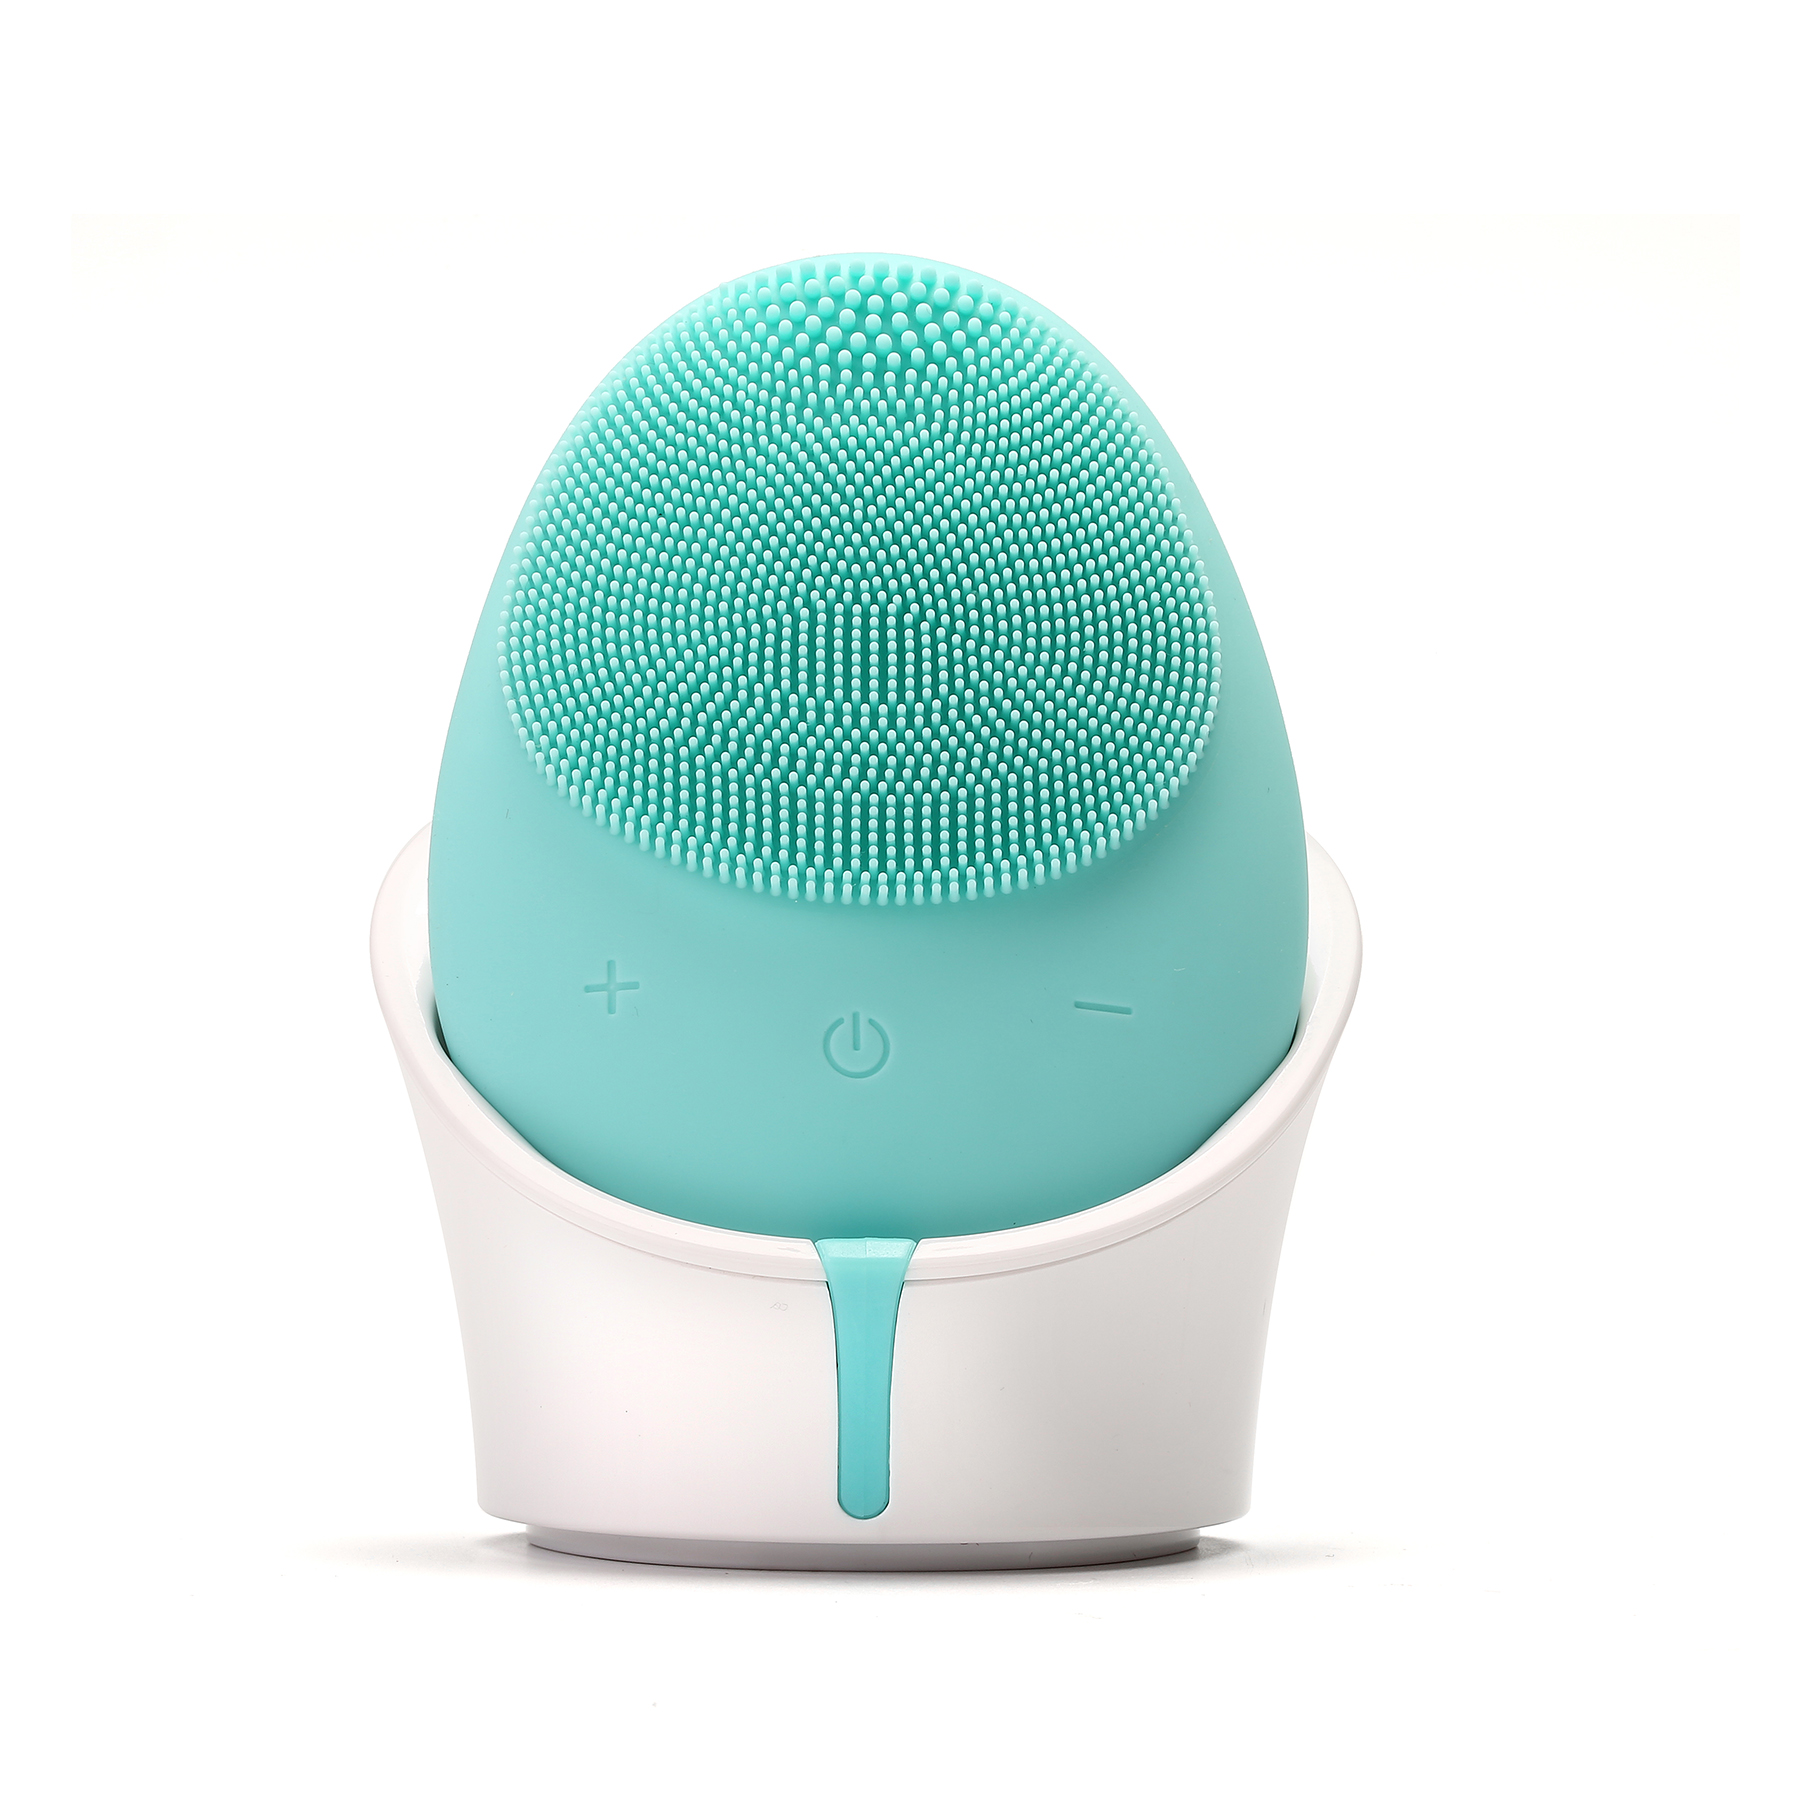 Homemade beauty acne face brush facial cleansing spin brush